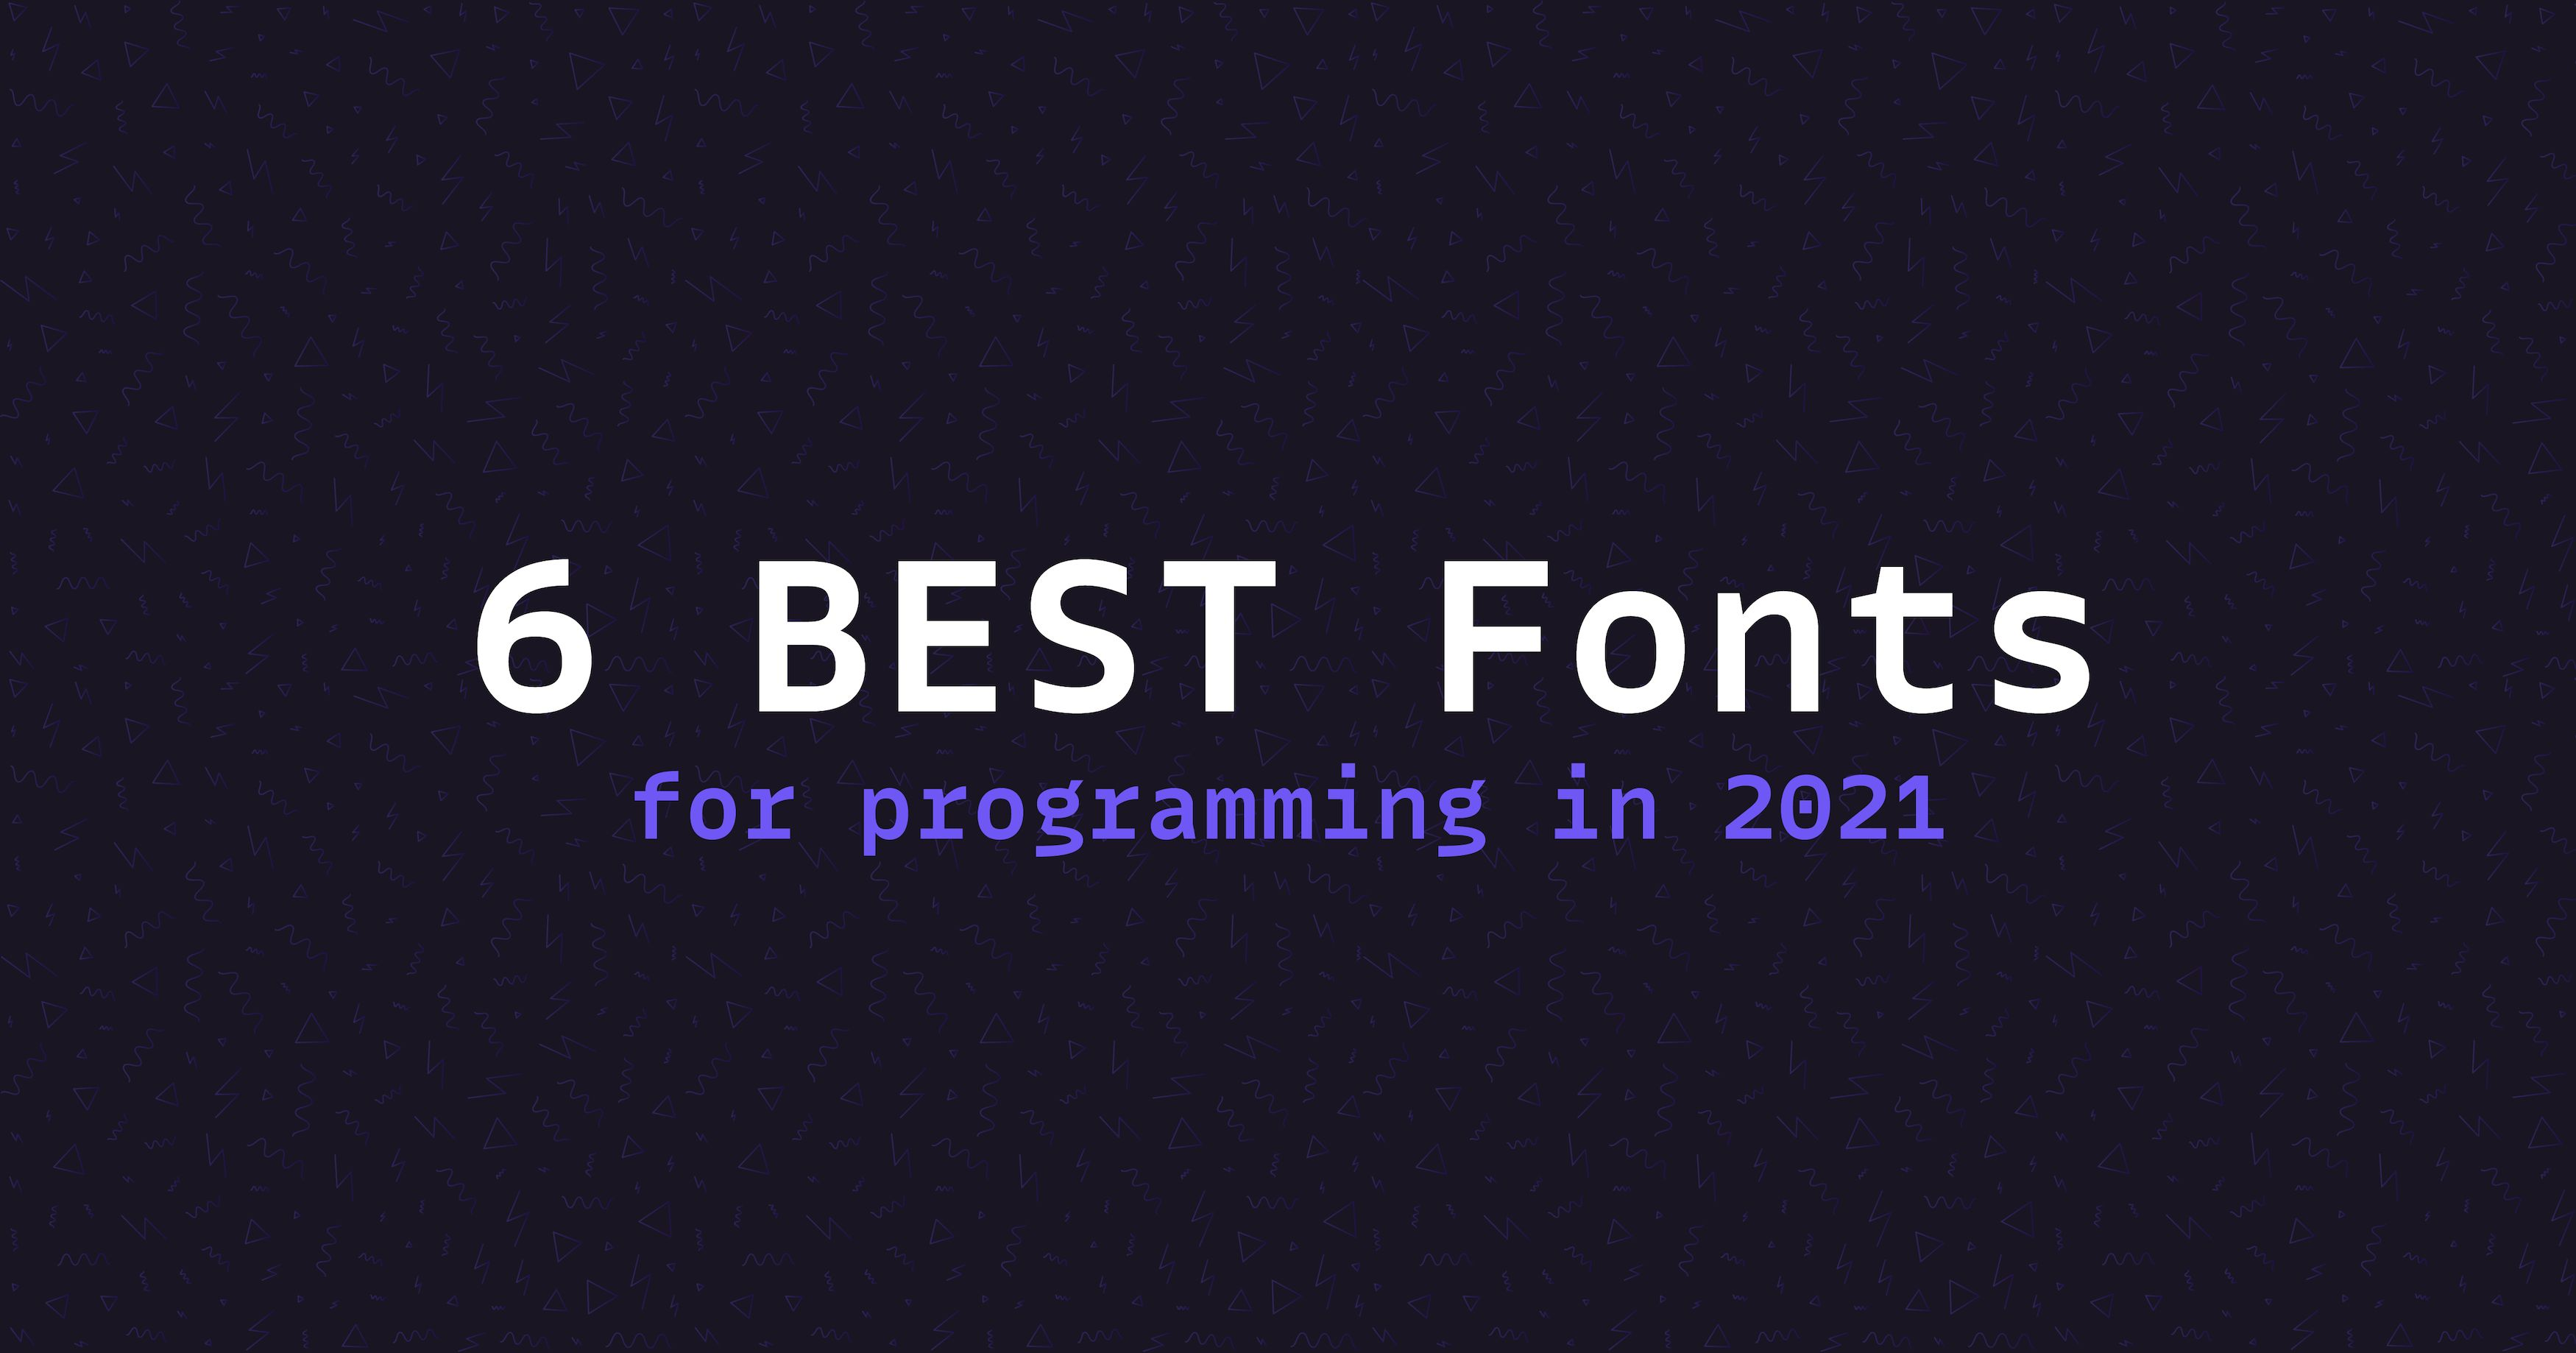 /reduce-your-eye-fatigue-with-these-top-6-fonts-for-easier-programming-in-2021-pb3k33g1 feature image